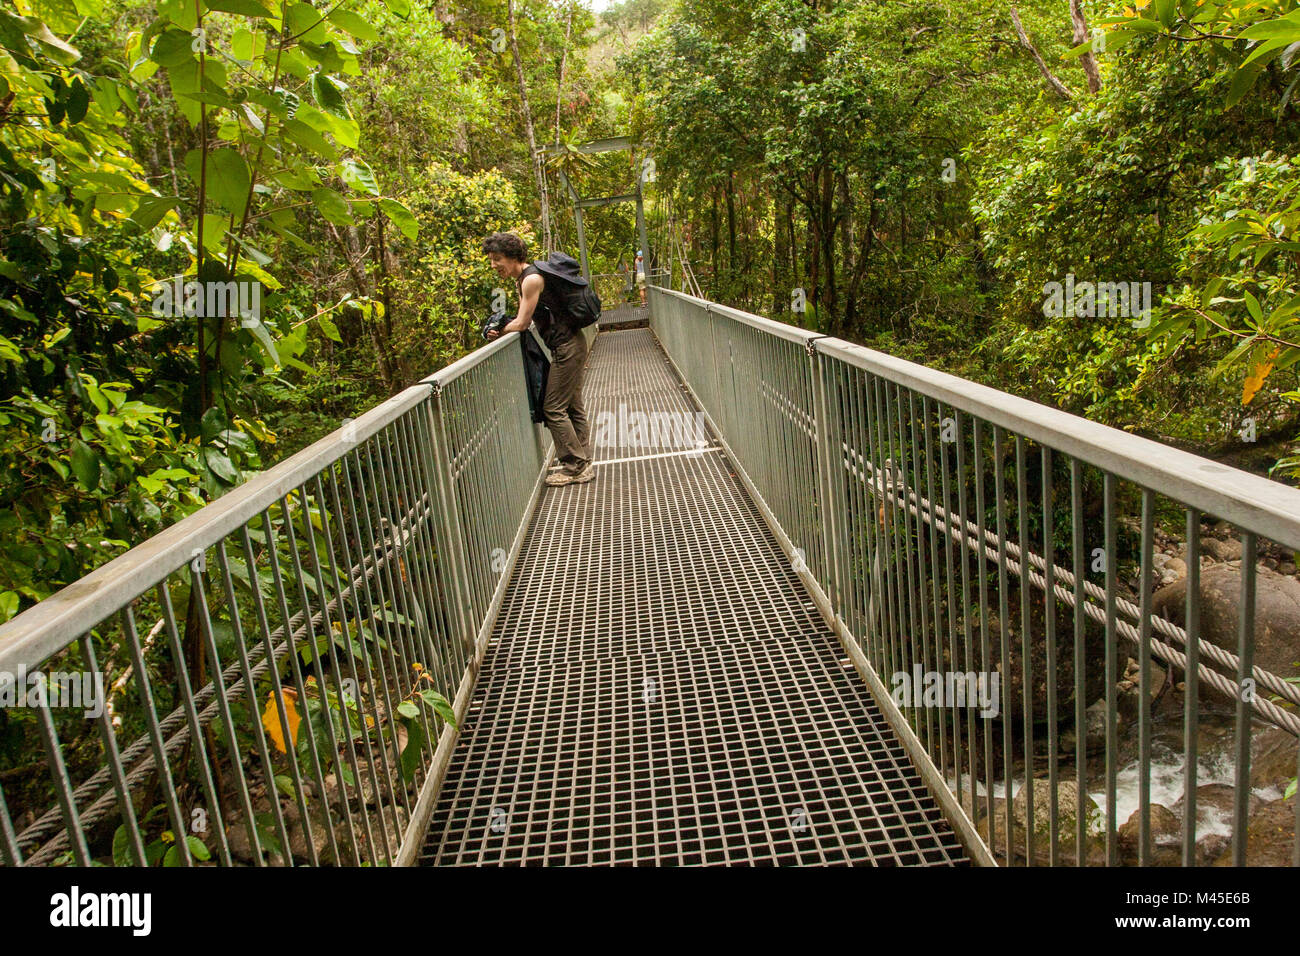 On the bridge across Mossman Gorge, Daintree National Park, North Queensland, Australia, Stock Photo